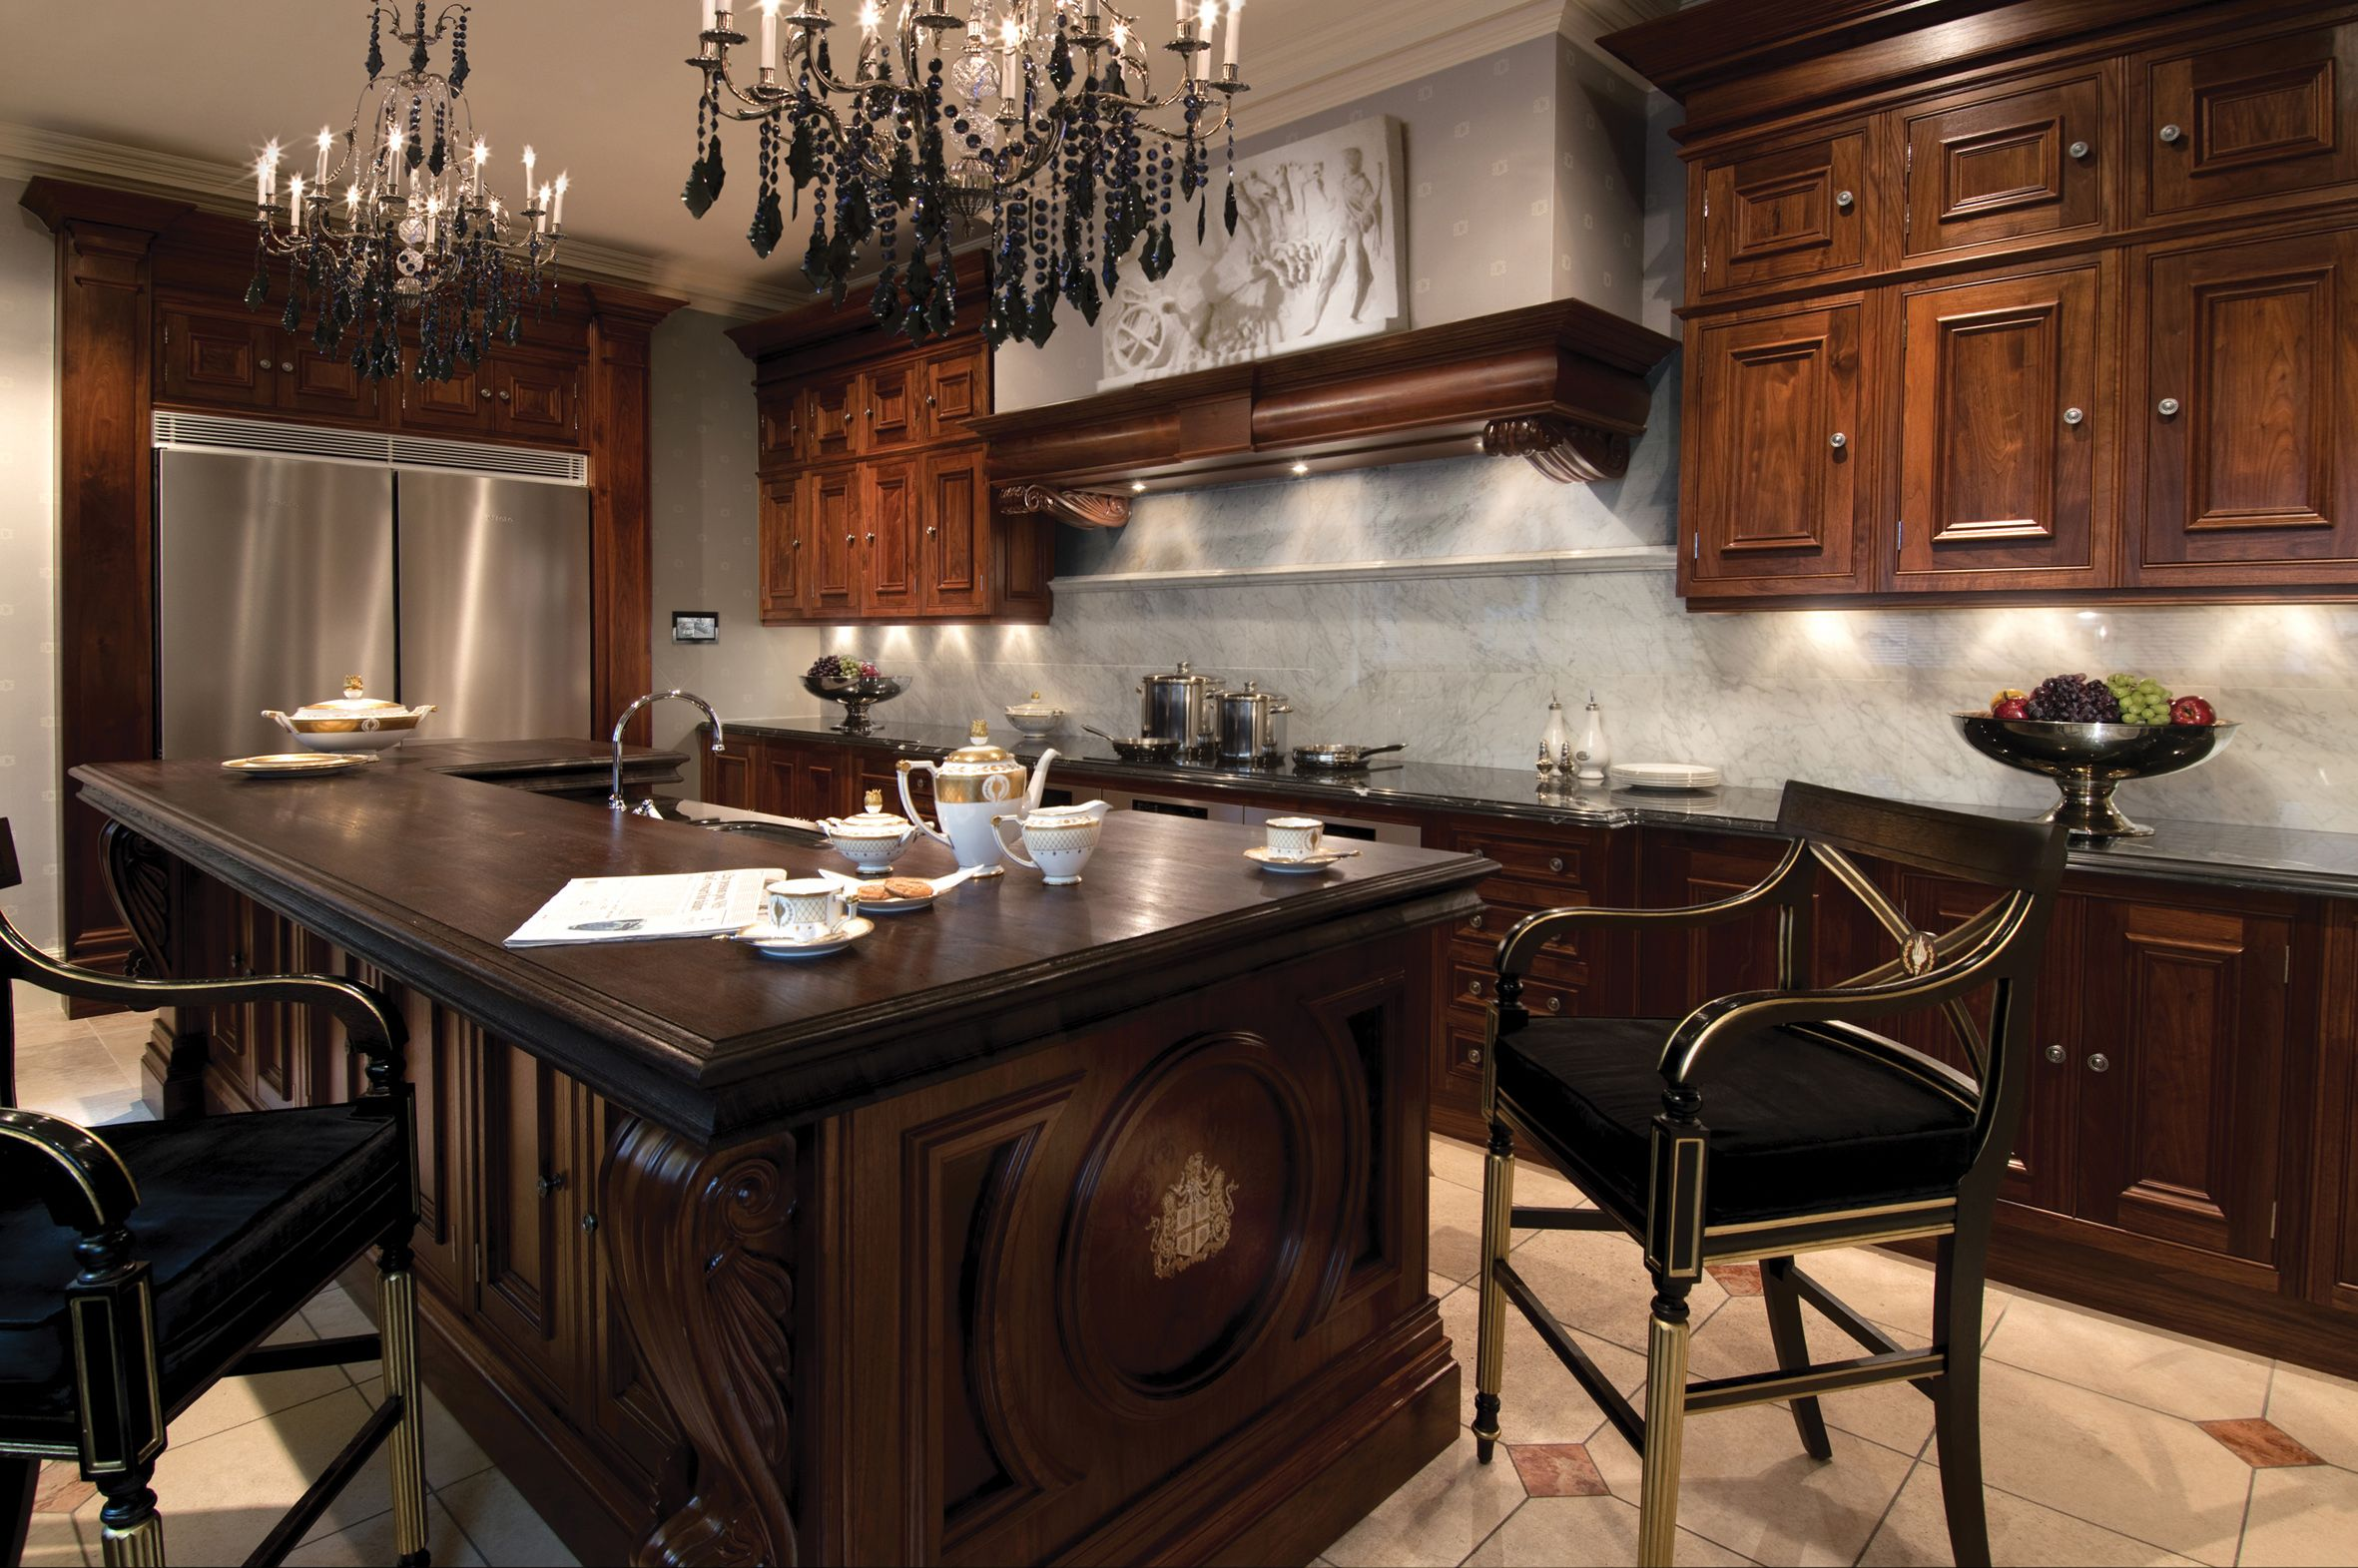 Luxury kitchens by clive christian interior design inspiration eva - Clive Christian Google Search Kitchen Pinterest Interiors Kitchens And House